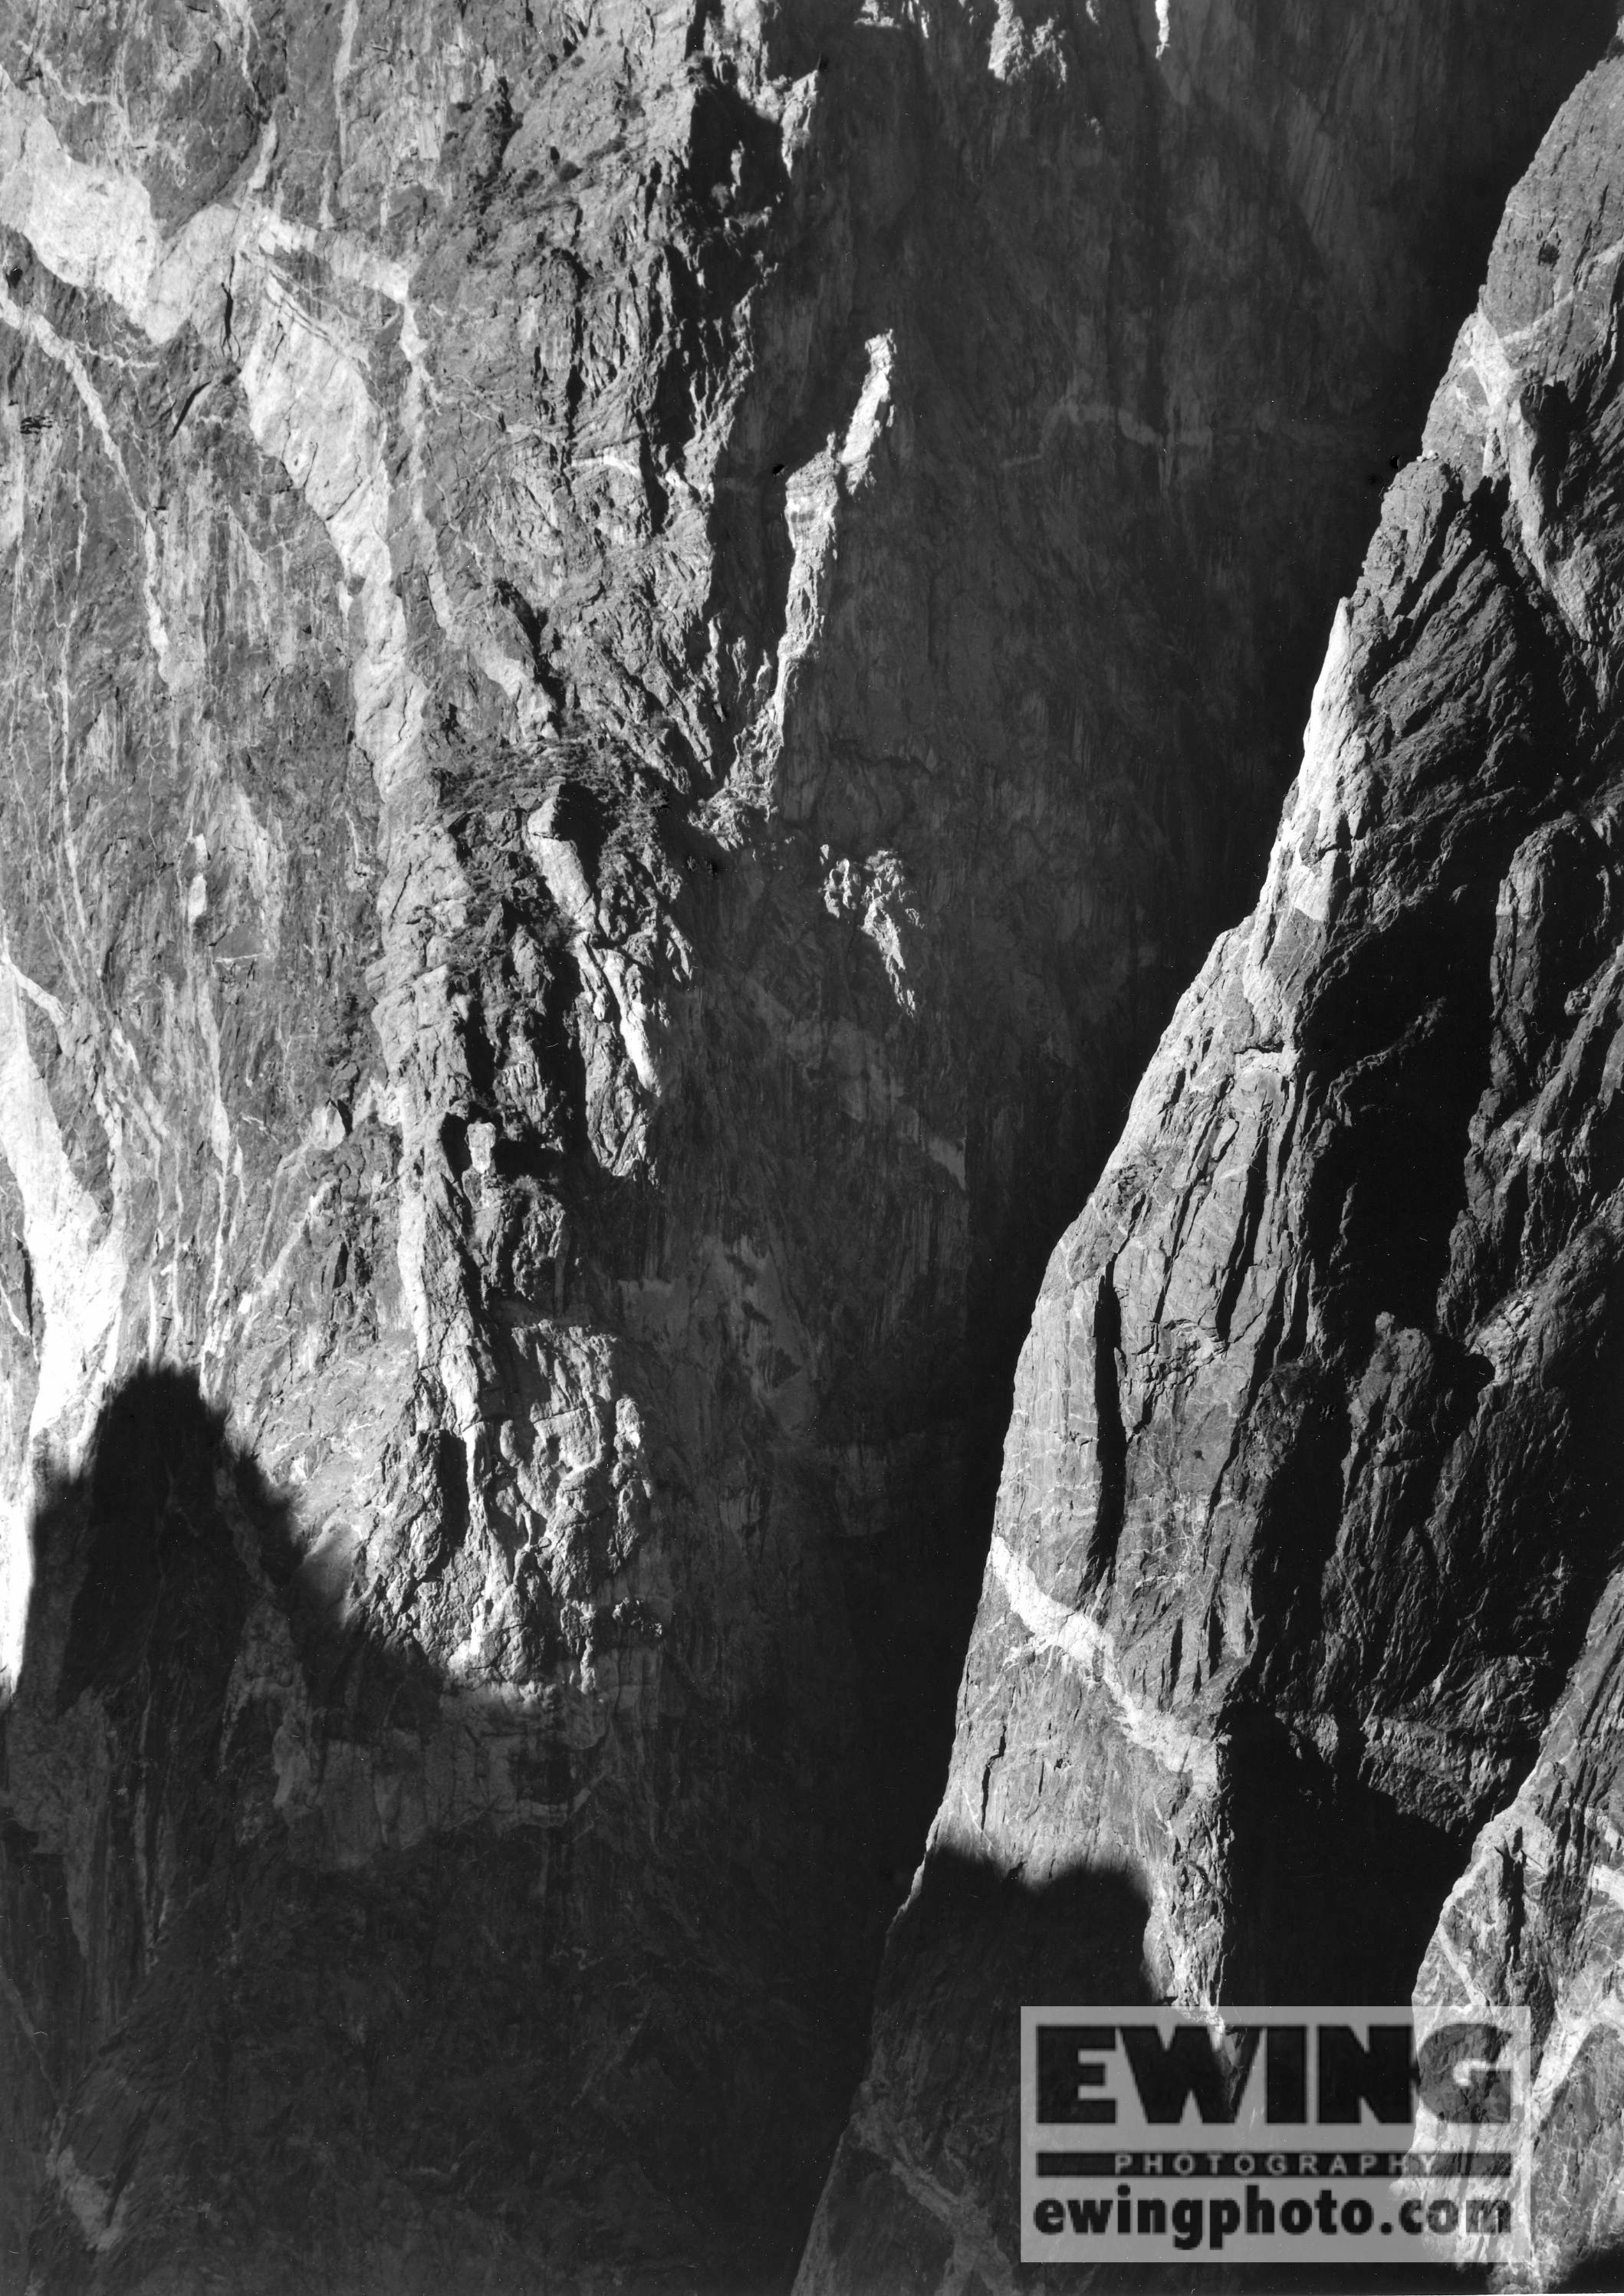 Painted Wall Black Canyon of the Gunnison, Colorado